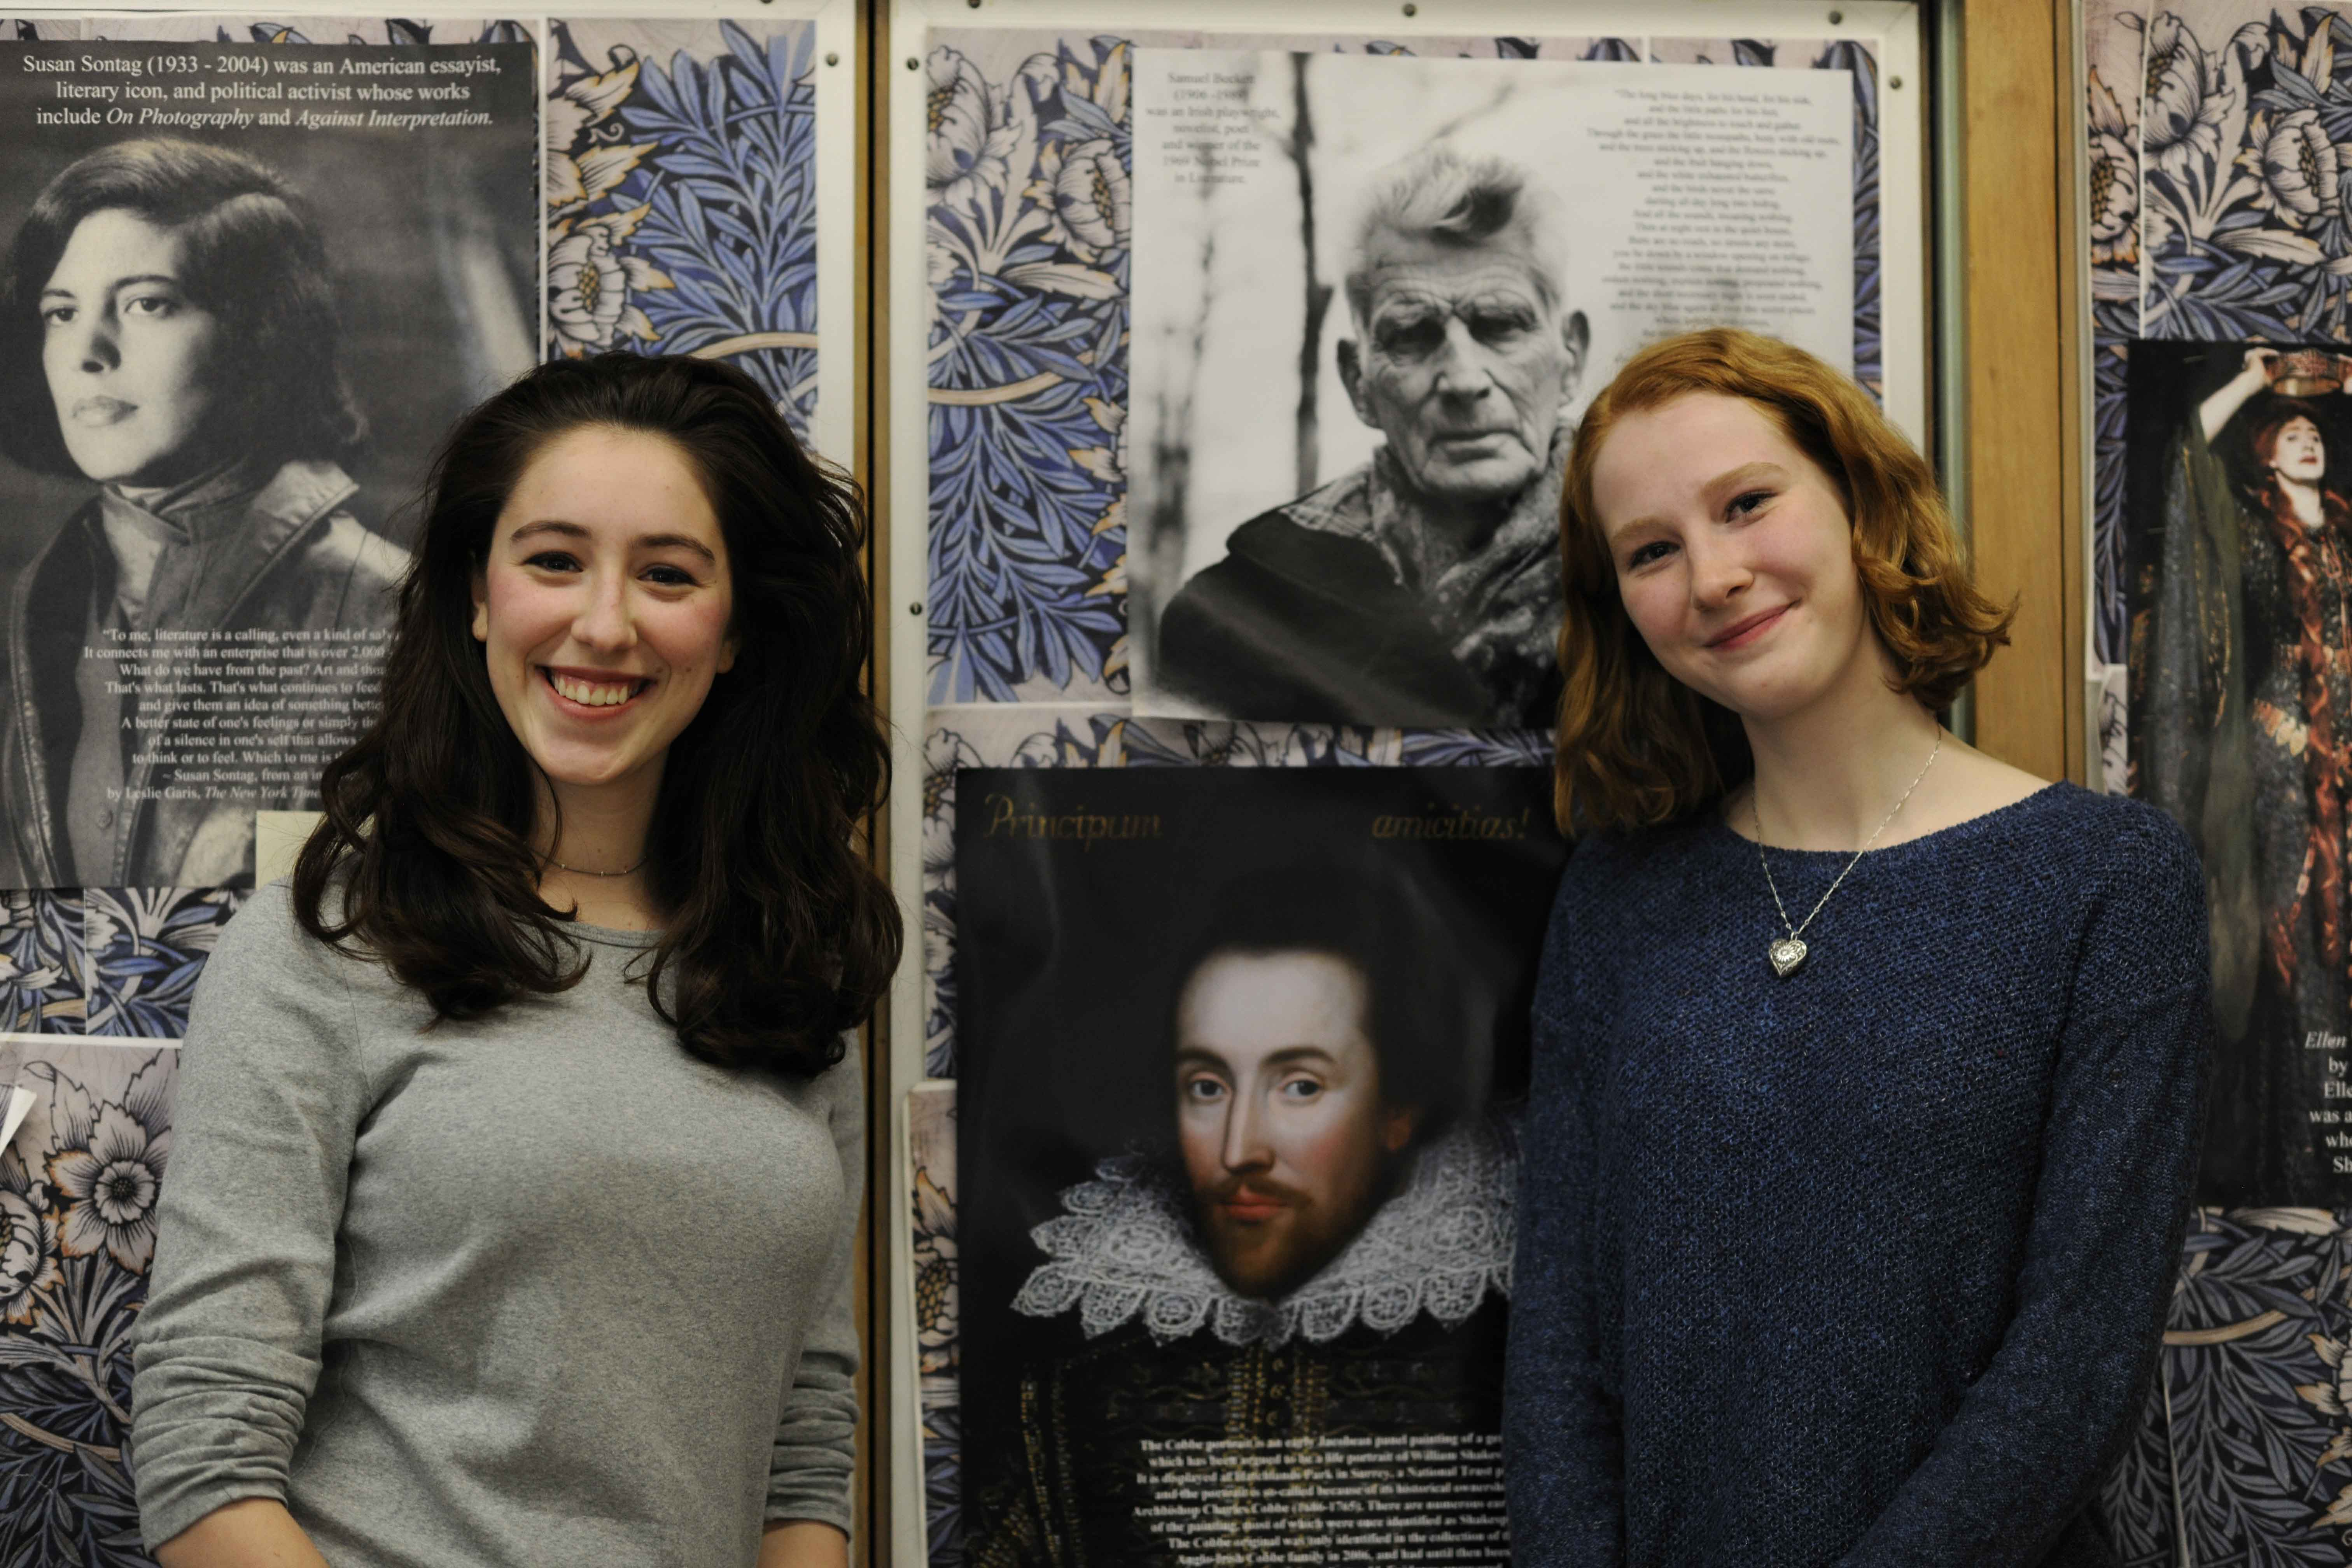 Ava Vercesi '19 (runner-up, on left) and Georgia Kester '17 (winner, on right), stand in front of a print of the newly discovered Cobbe portrait of William Shakespeare.